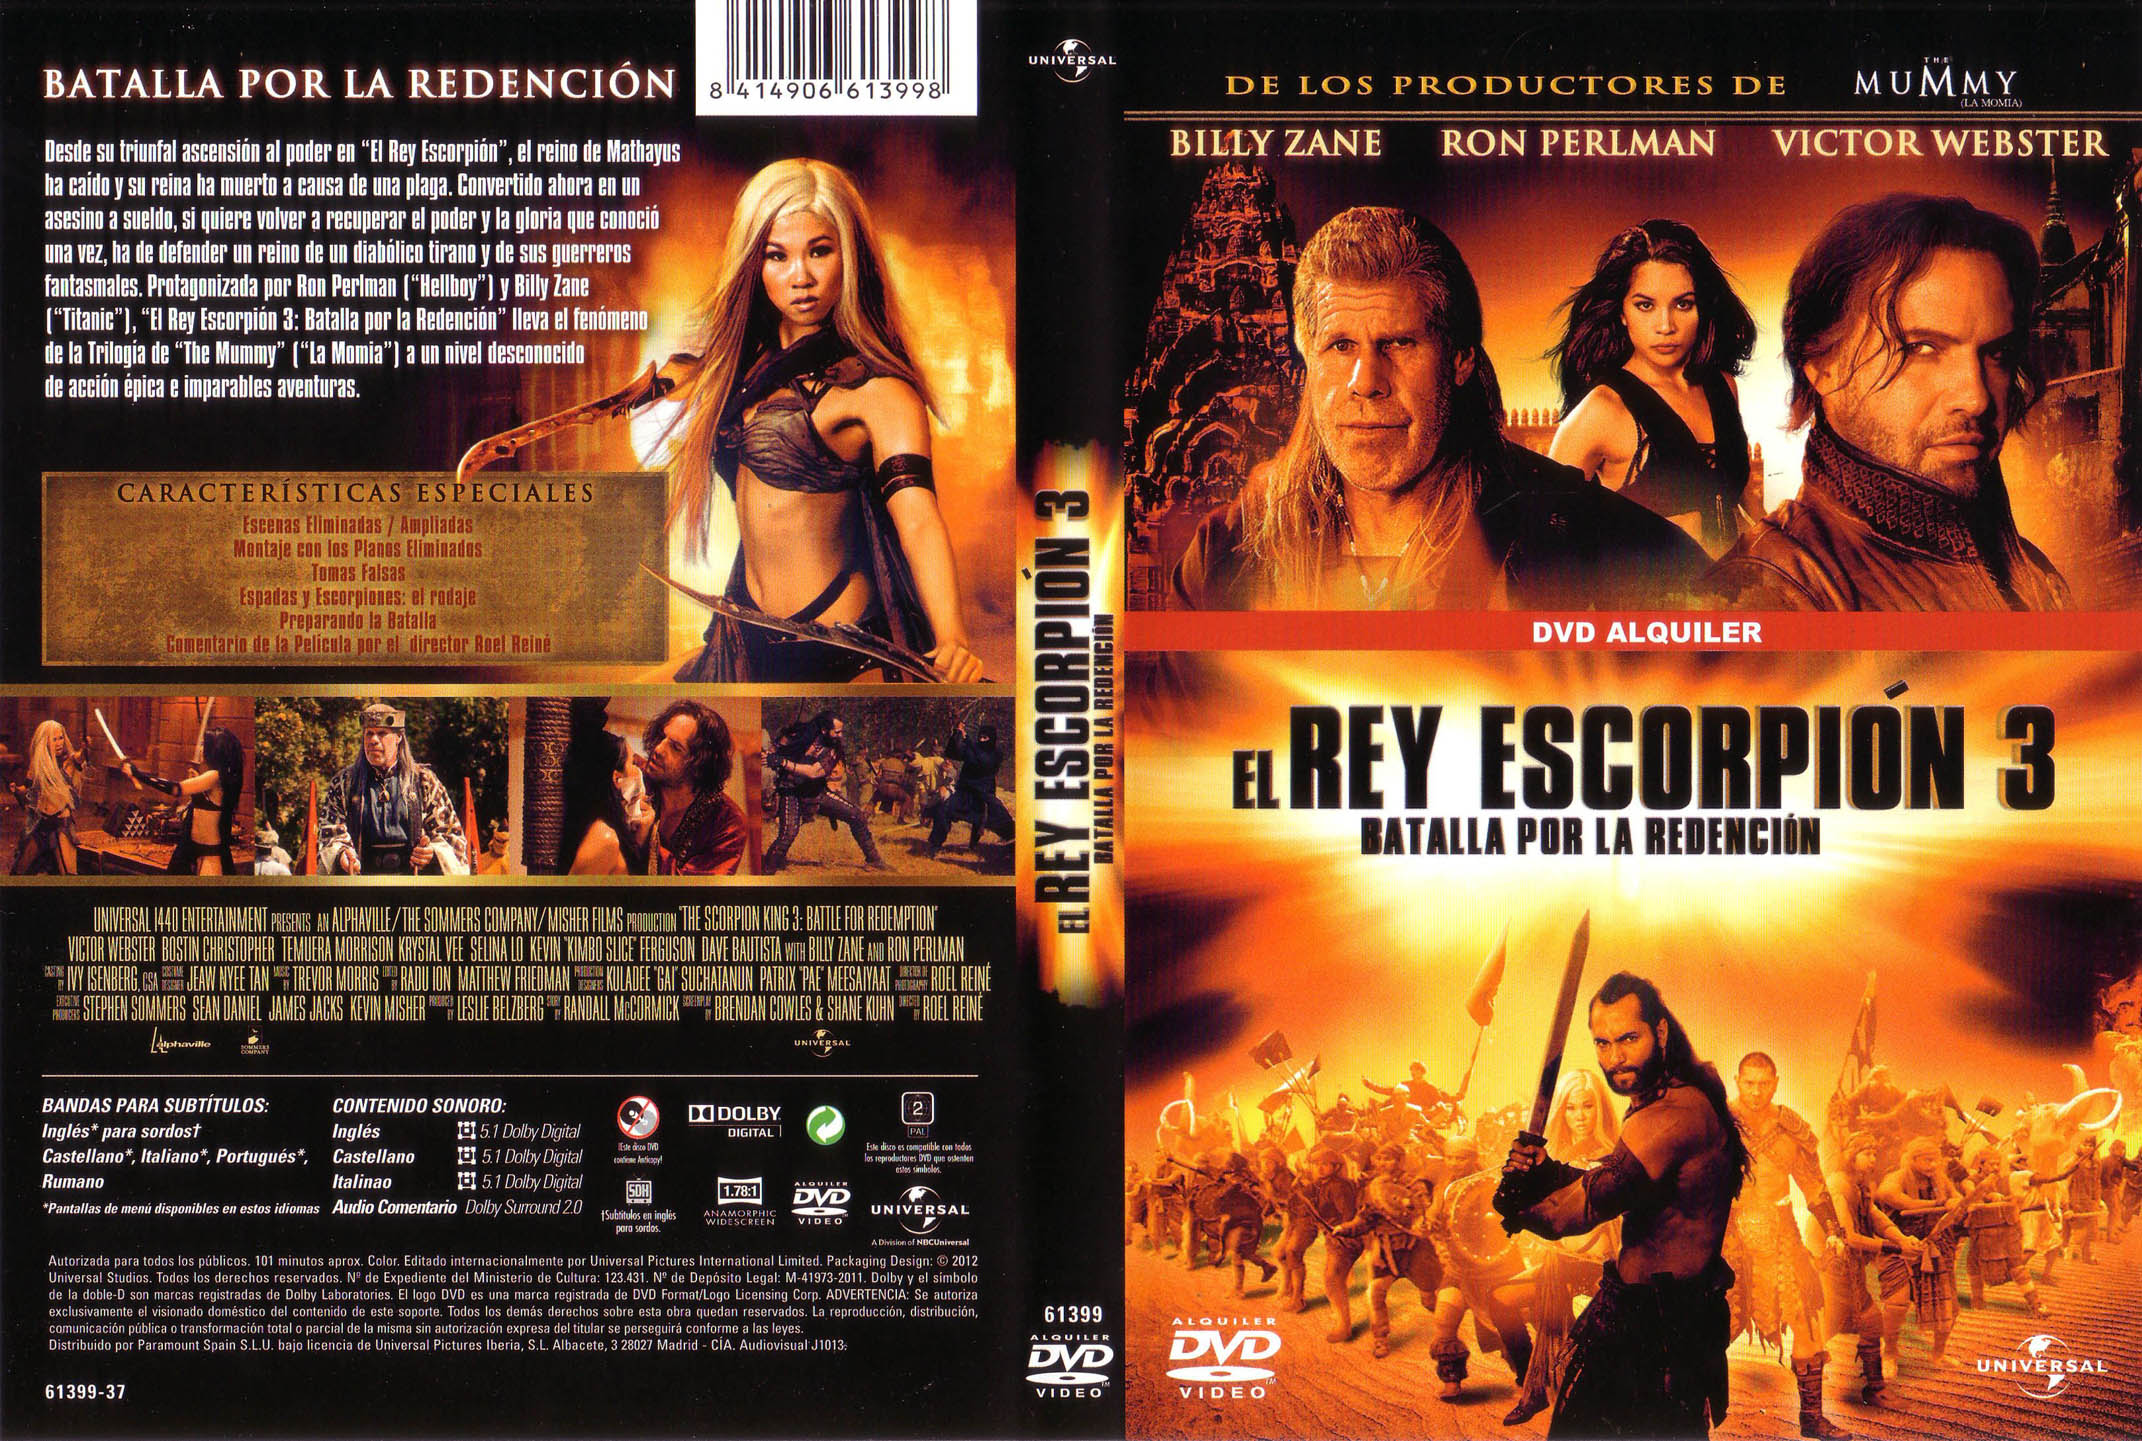 el rey escorpion: